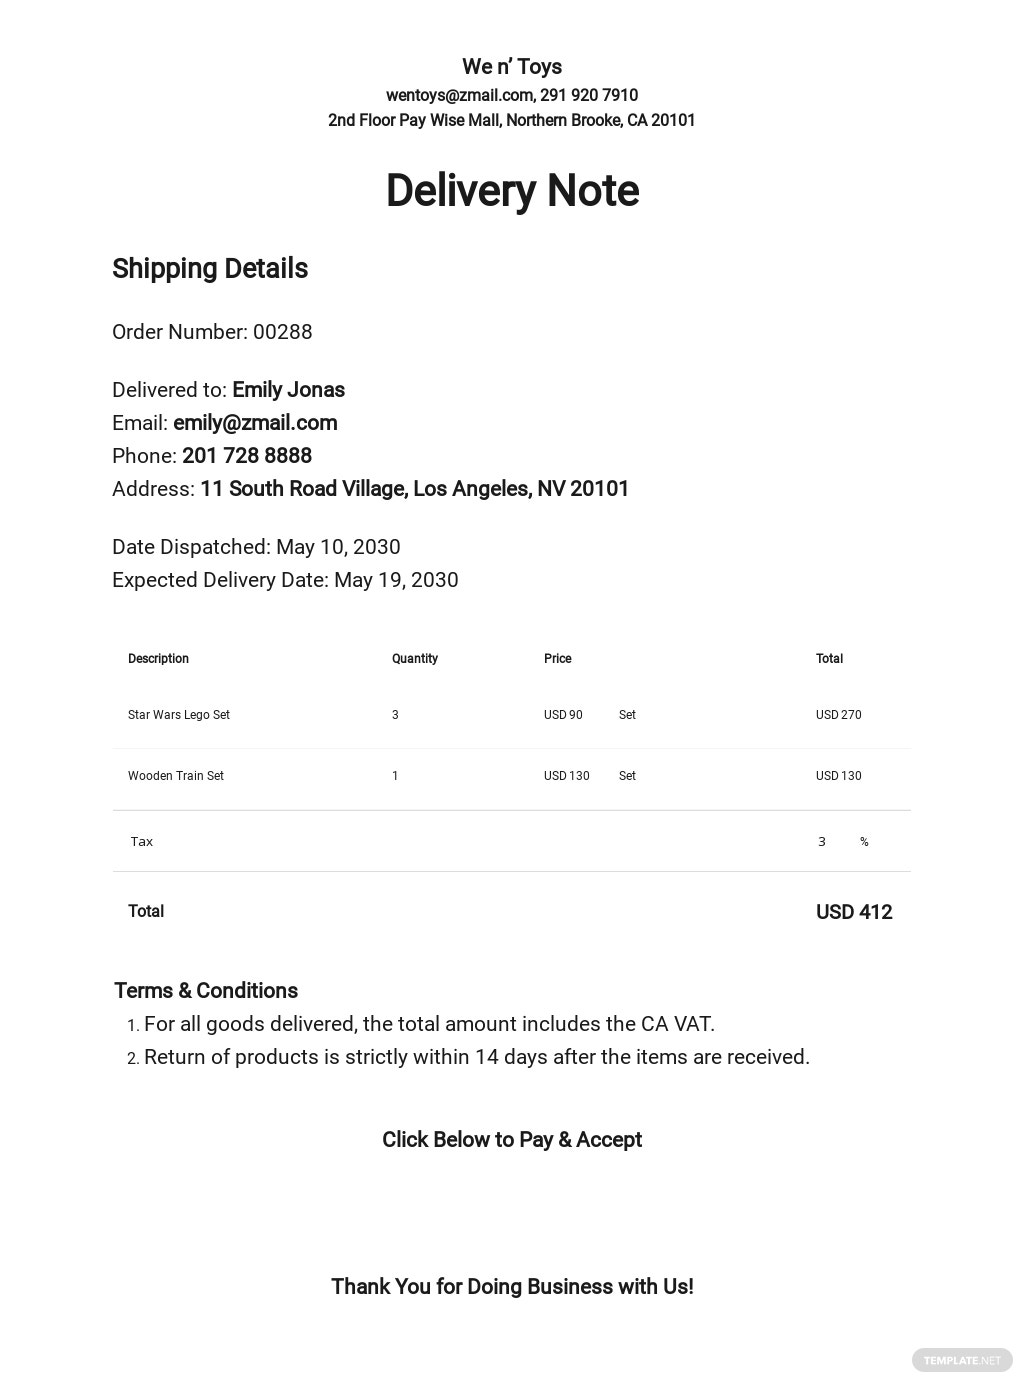 Delivery Note Example Template